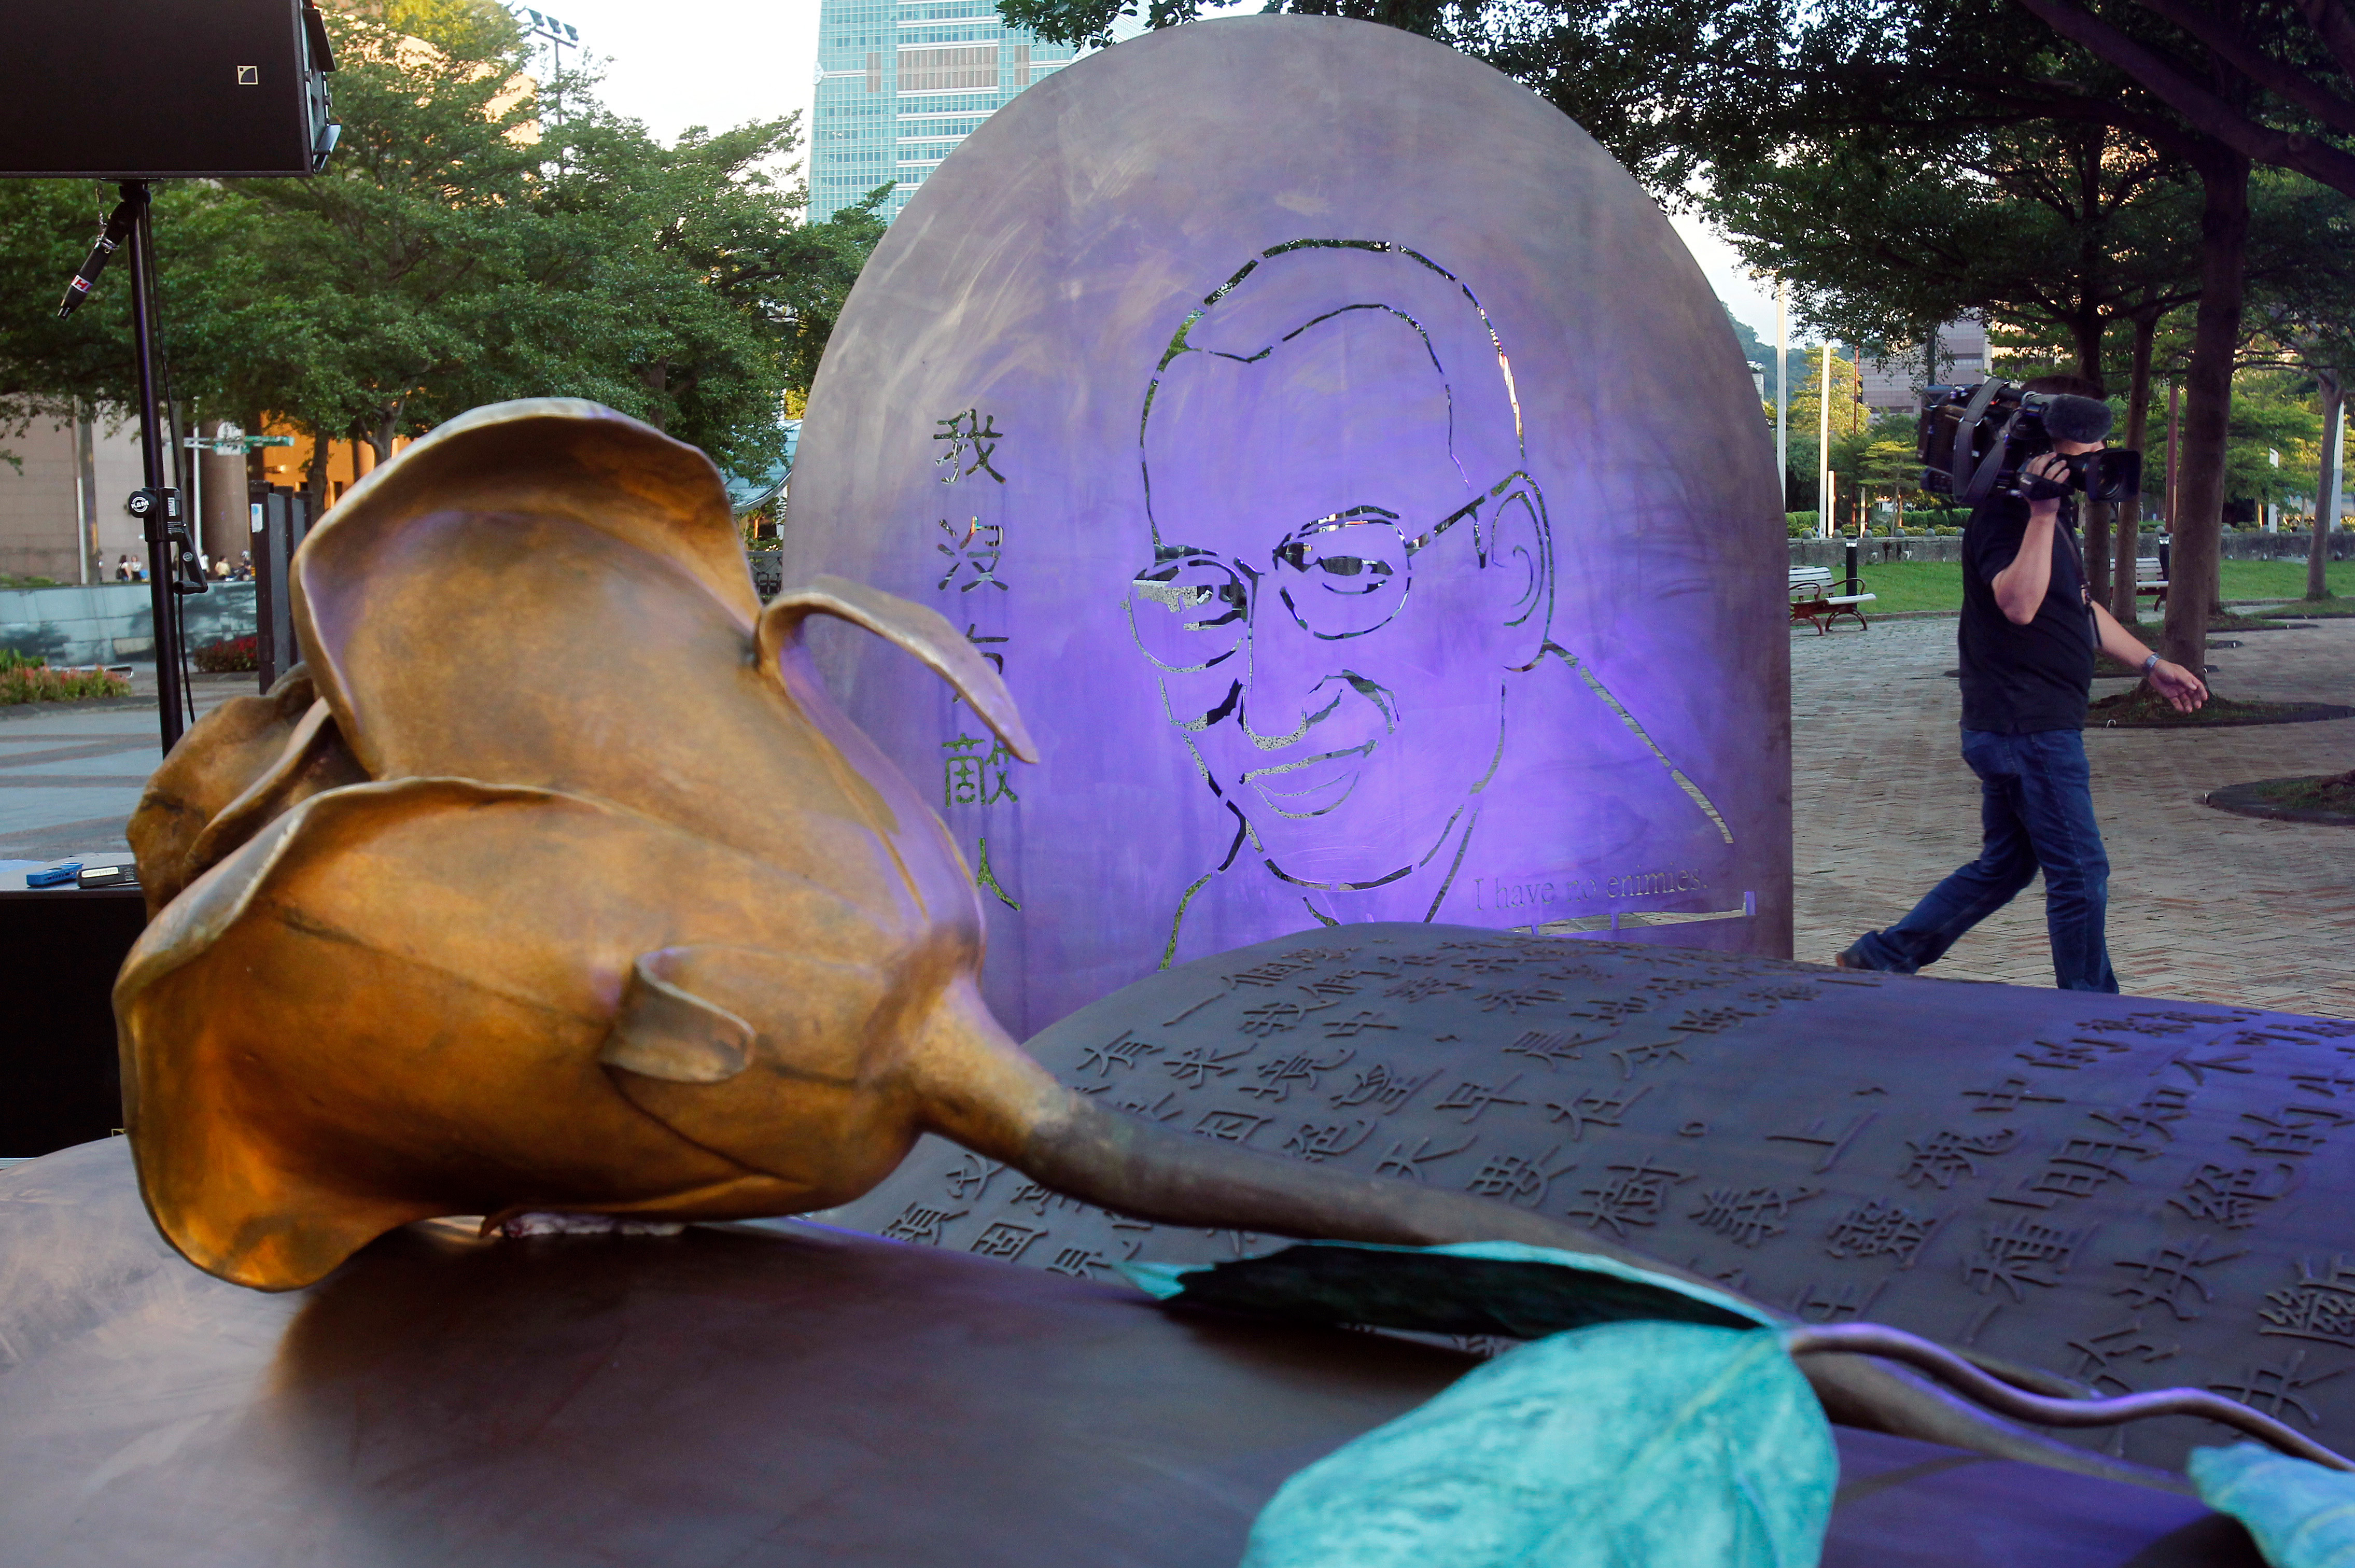 A sculpture of the Chinese Nobel peace prize recipient Liu Xiaobo who passed away one year ago can be seen outside City Hall on  July 13, 2018, in Taipei, Taiwan.